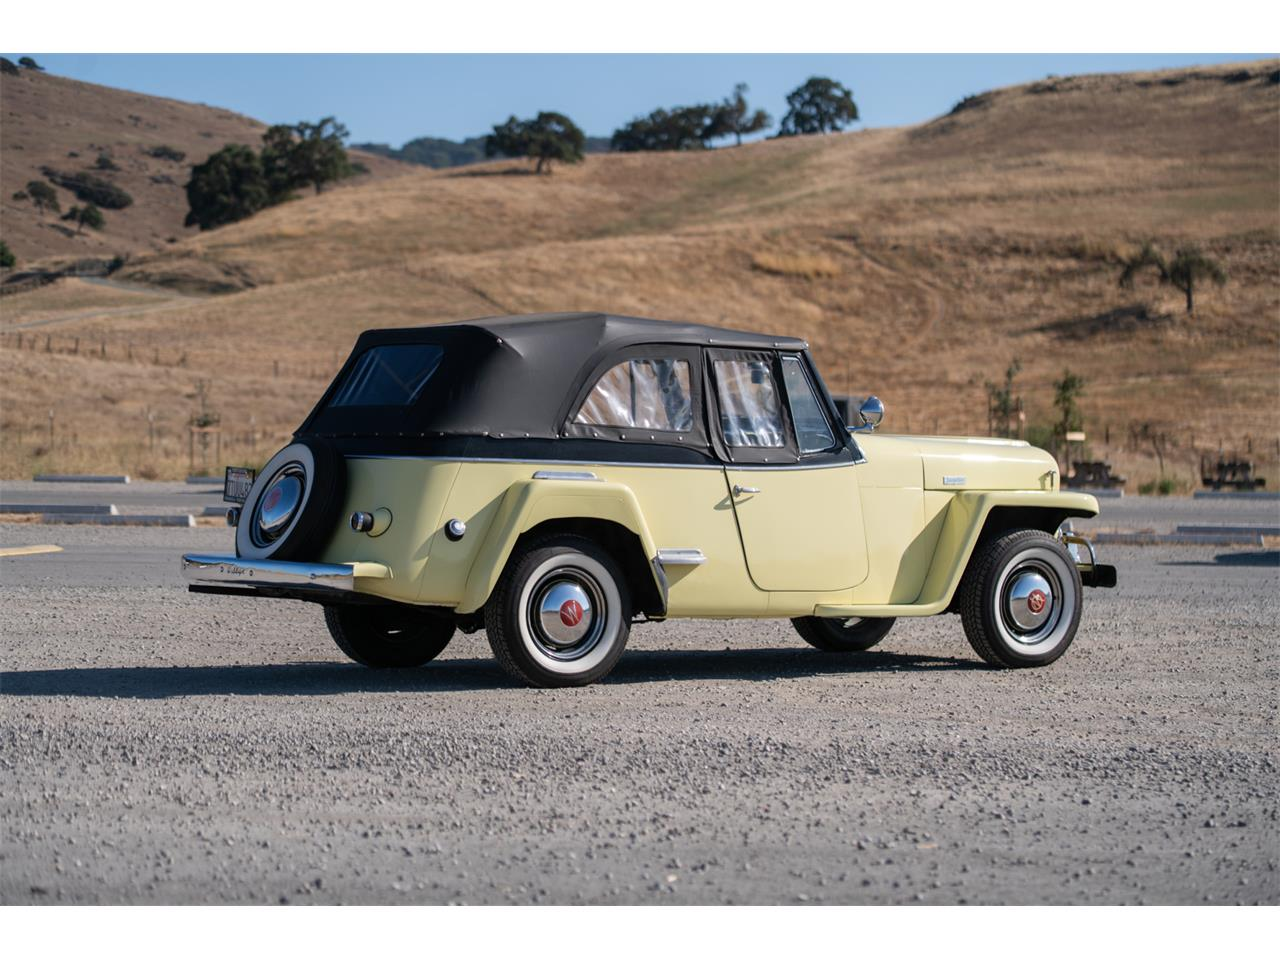 Large Picture of 1949 Jeepster located in San Jose California Auction Vehicle - QP2N